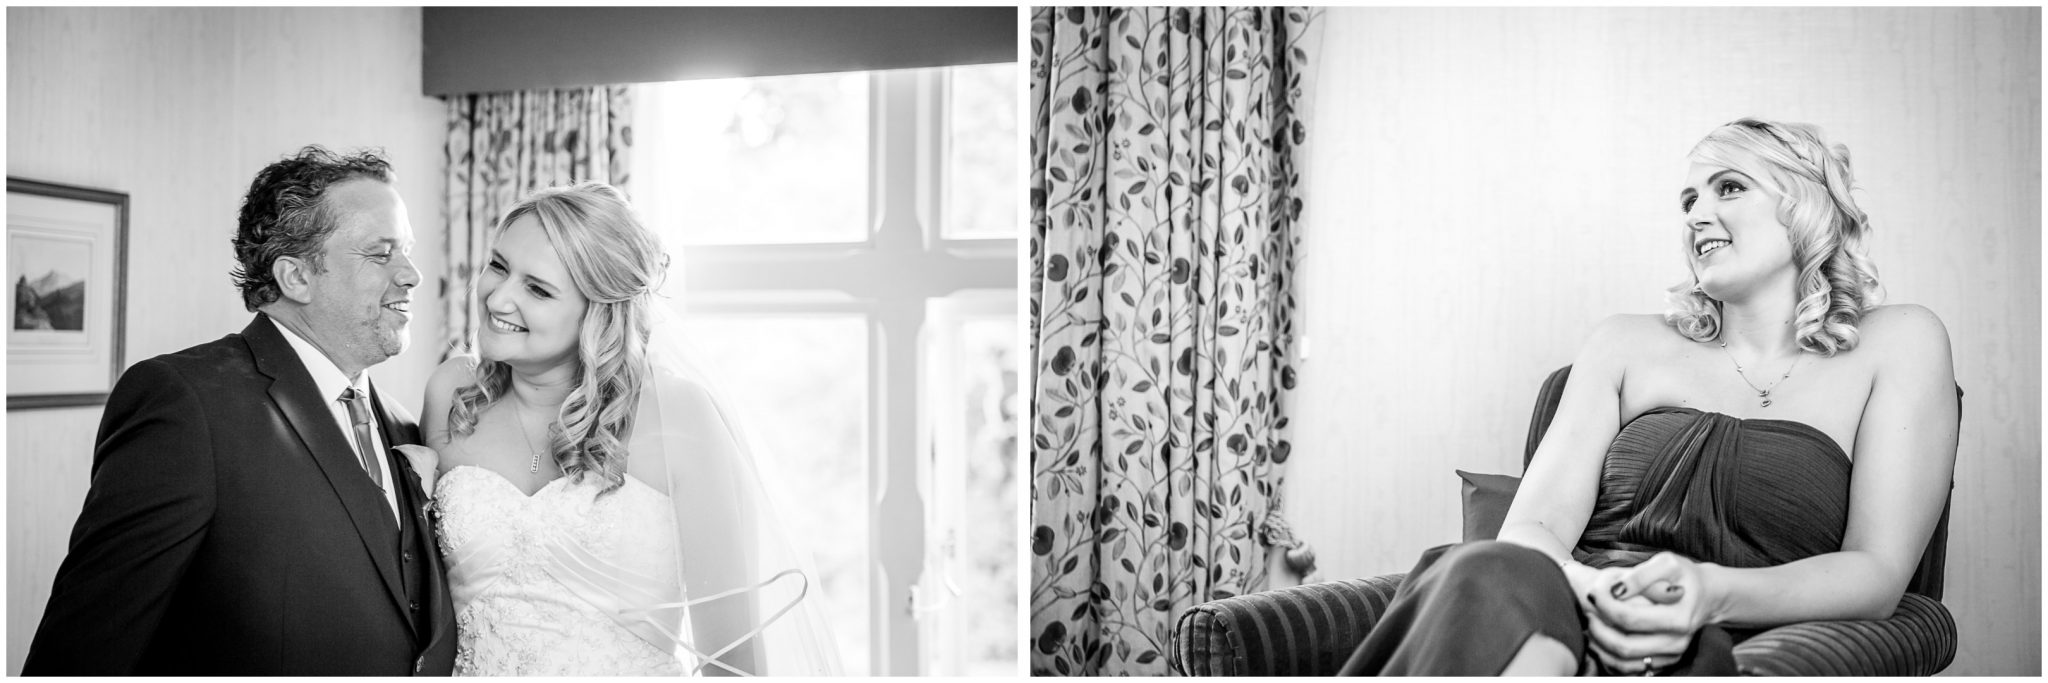 Audleys Wood wedding photograhy black and white candid photos